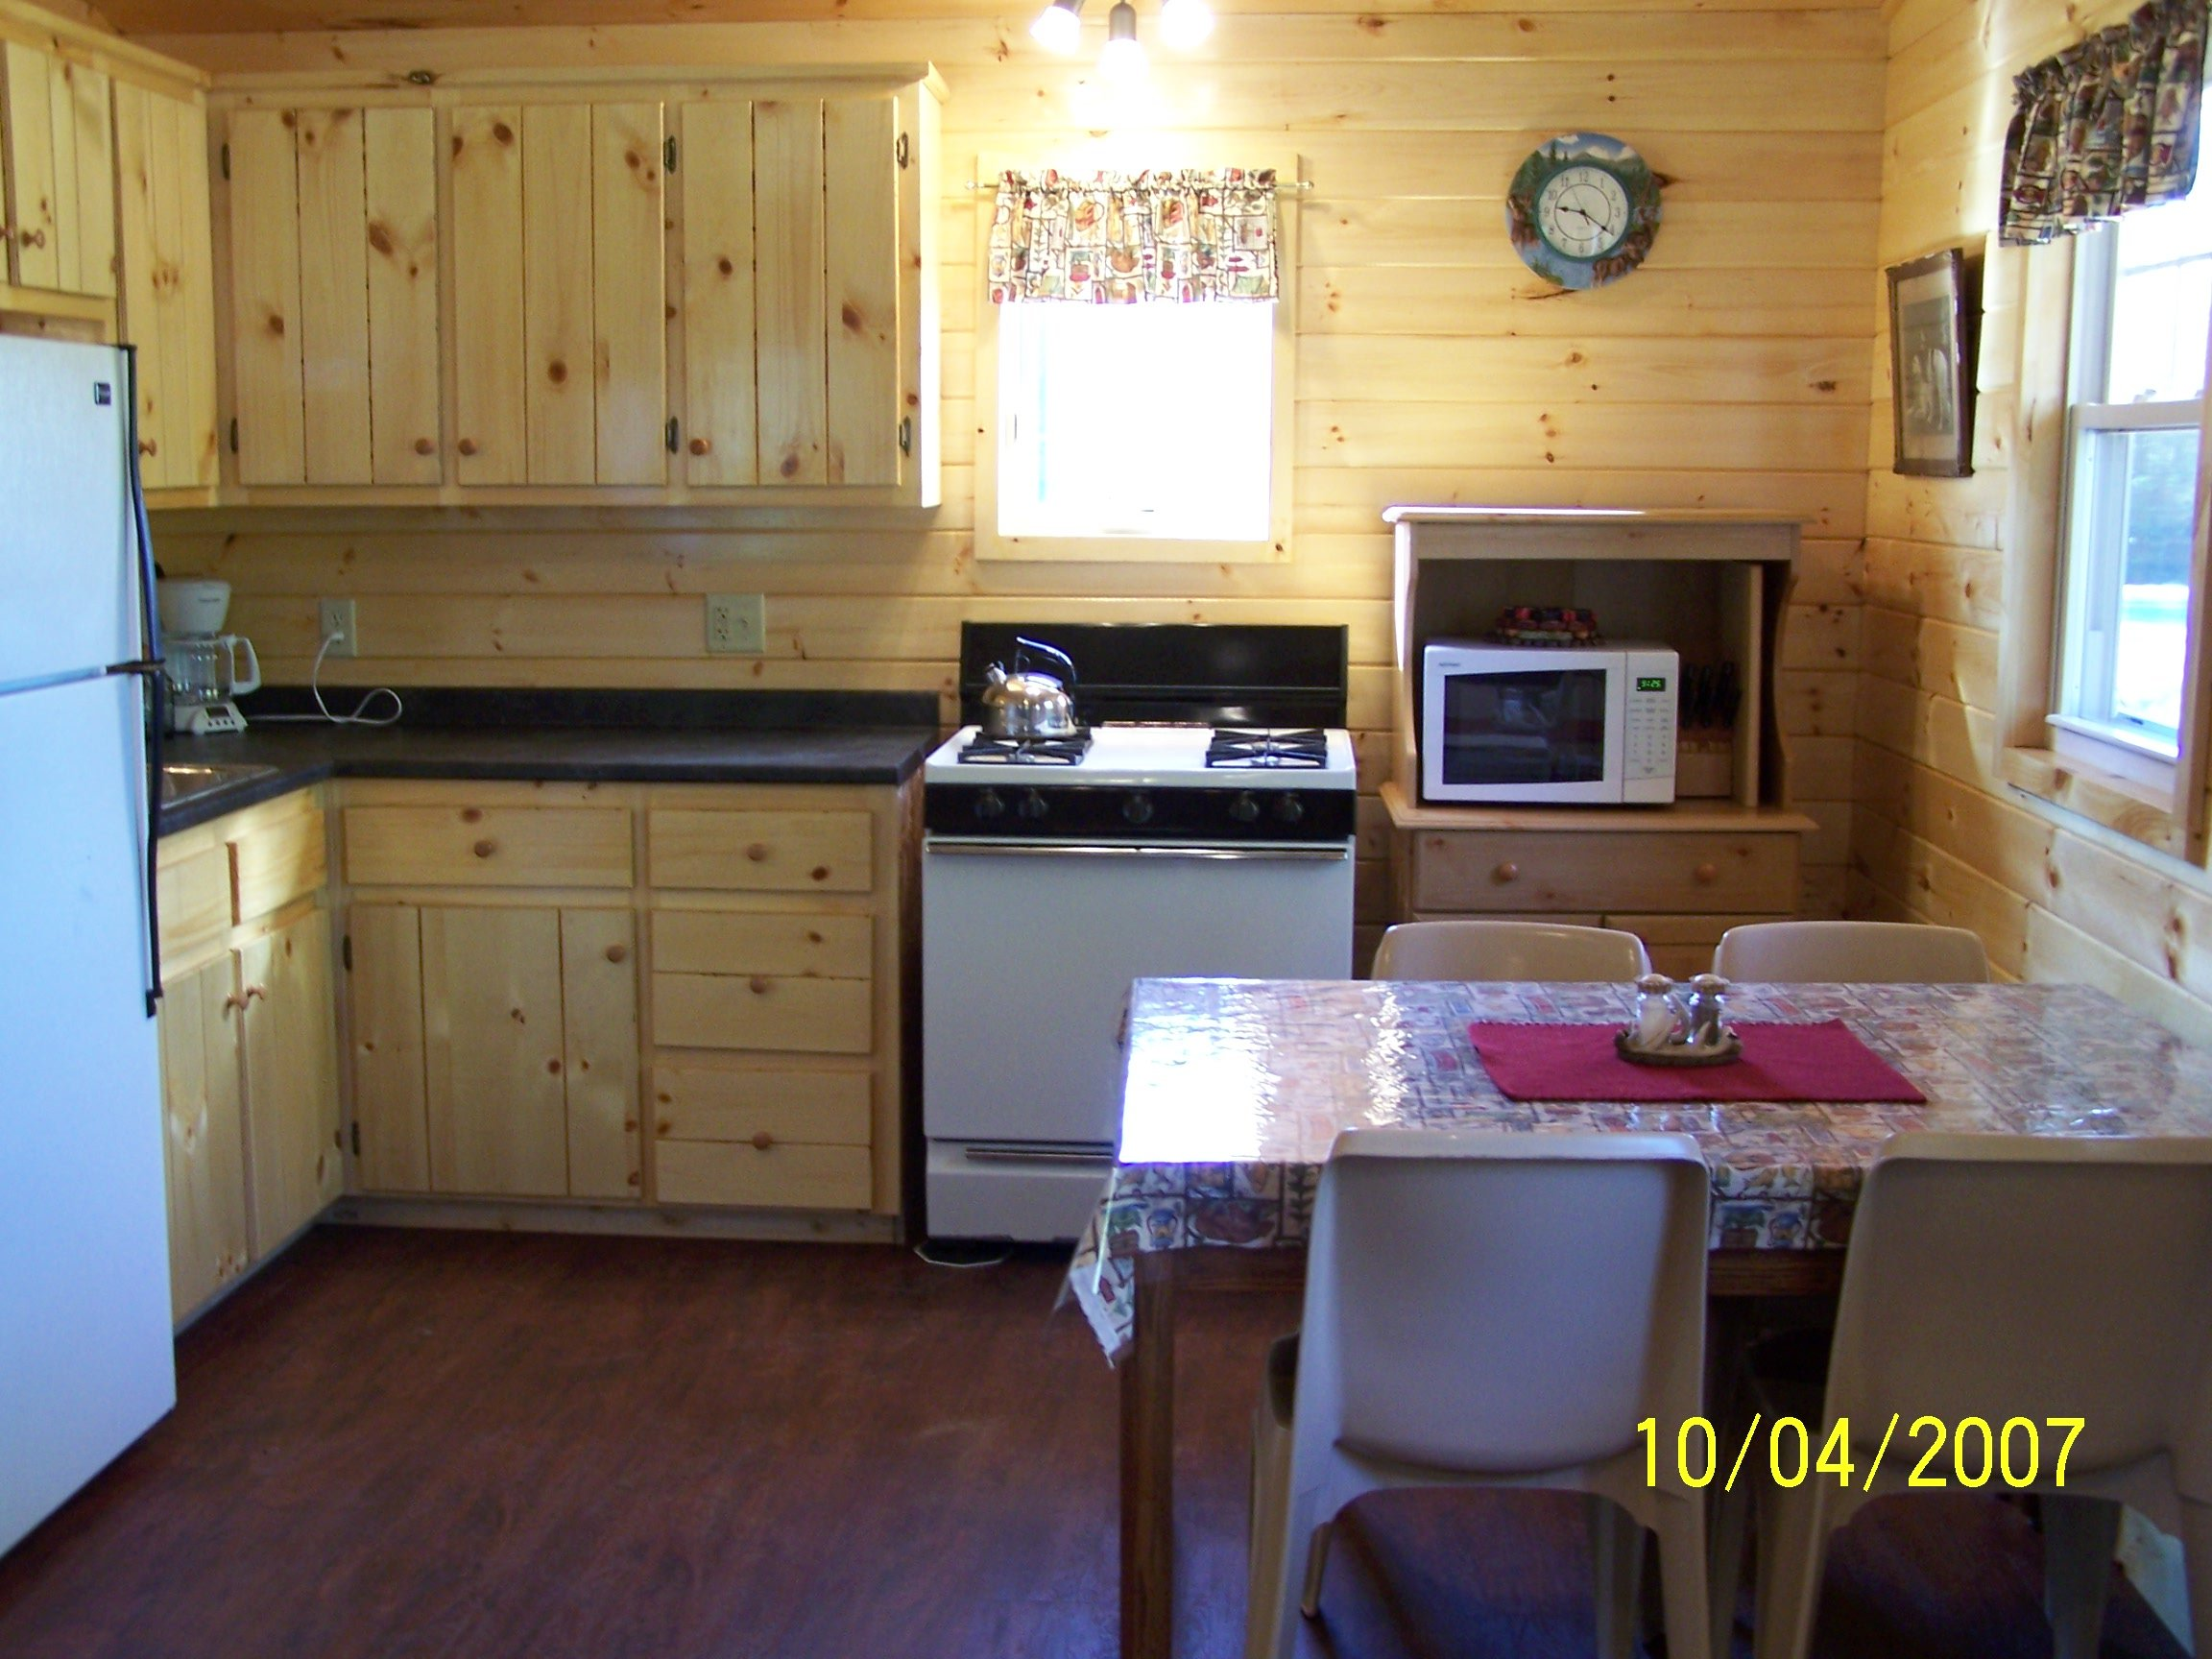 Guest house kitchen area